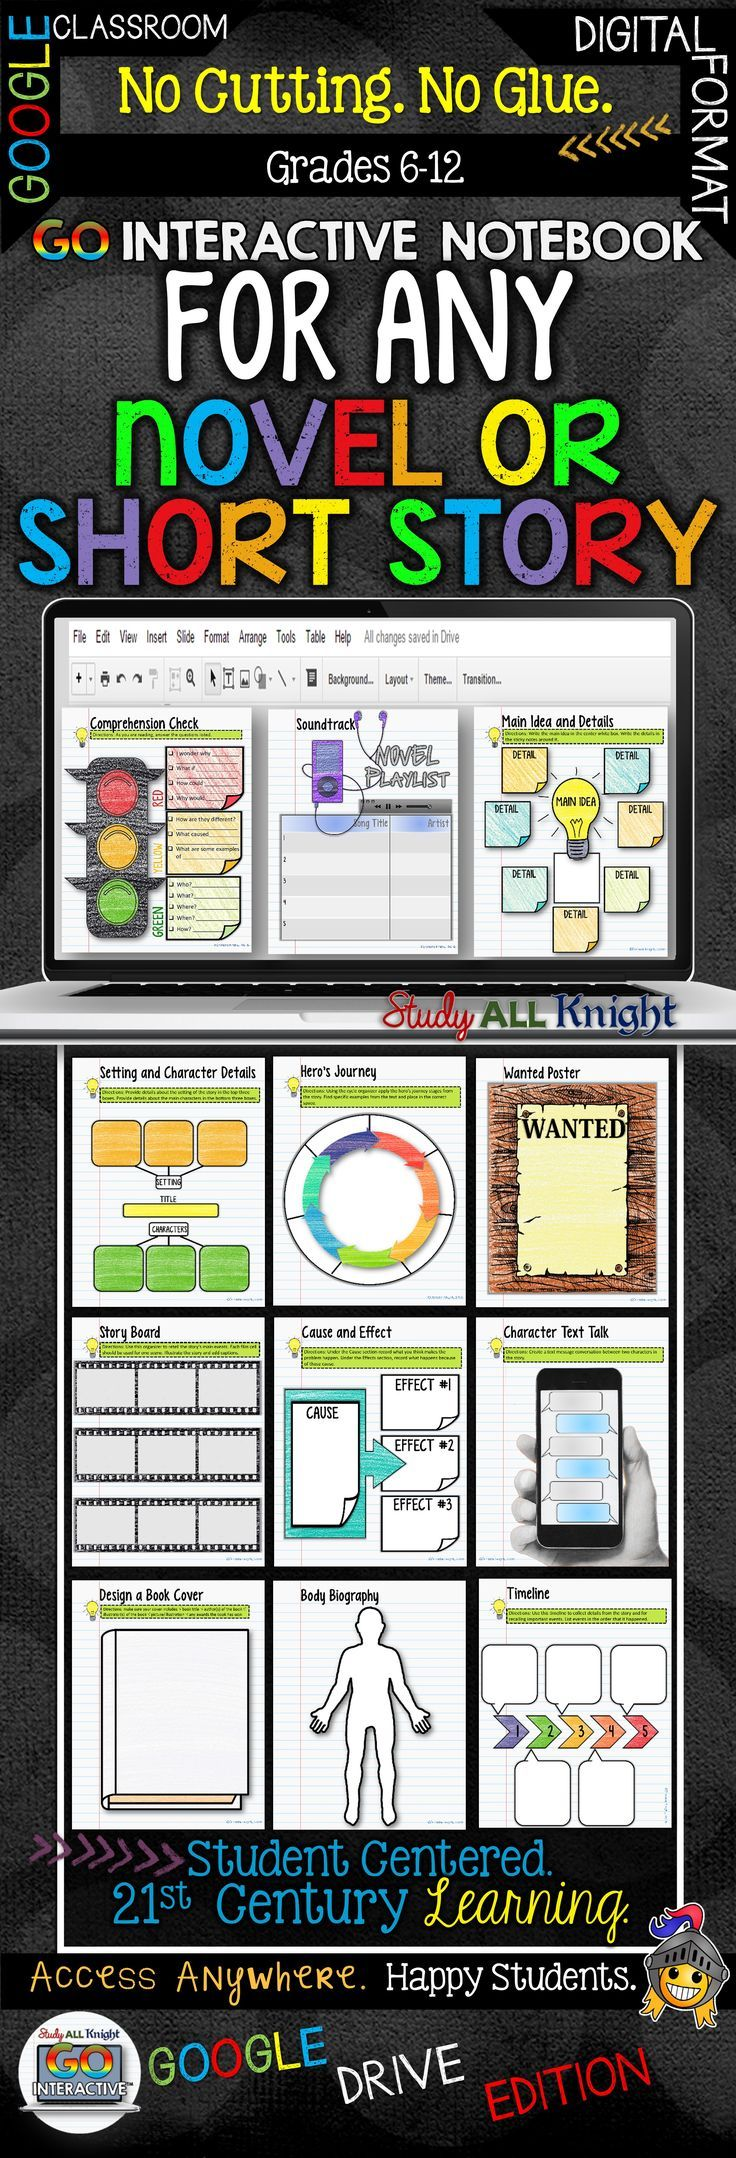 For any novel or quick story digital pocket book paperless google drive useful resource